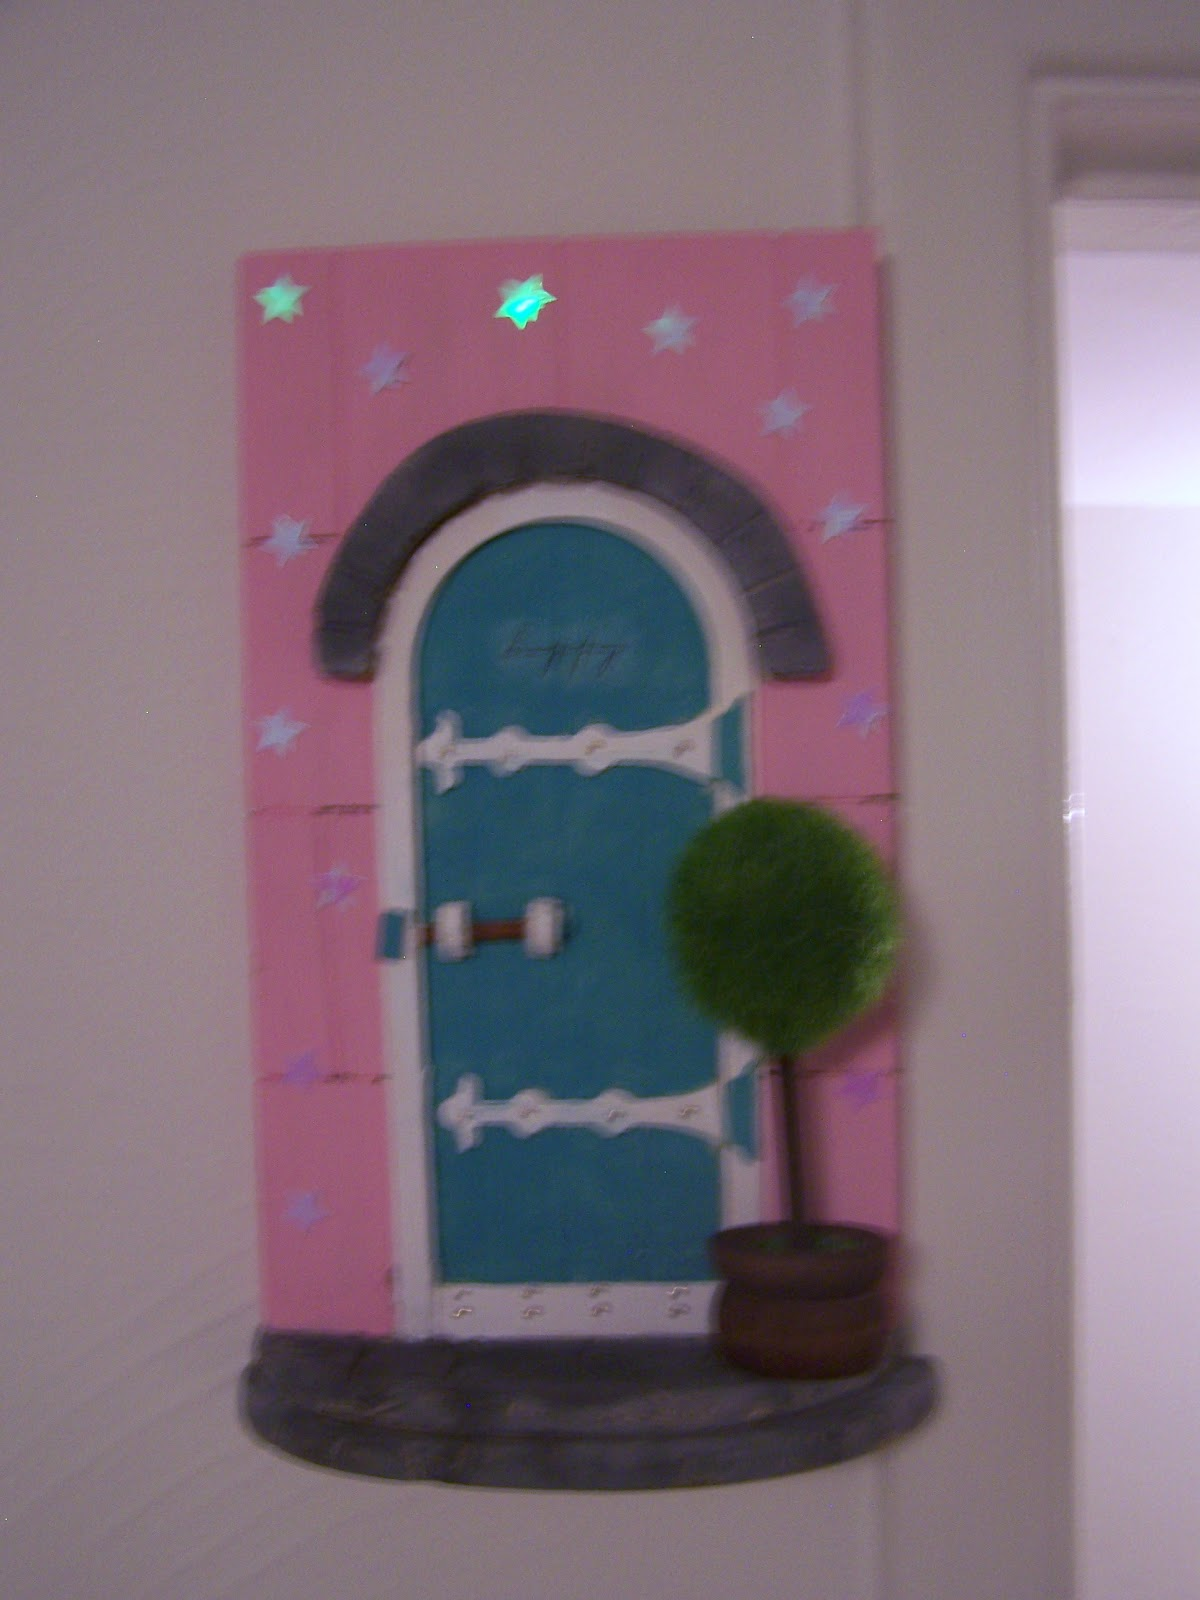 Just 3 more days holy tooth loss batman for Batman fairy door